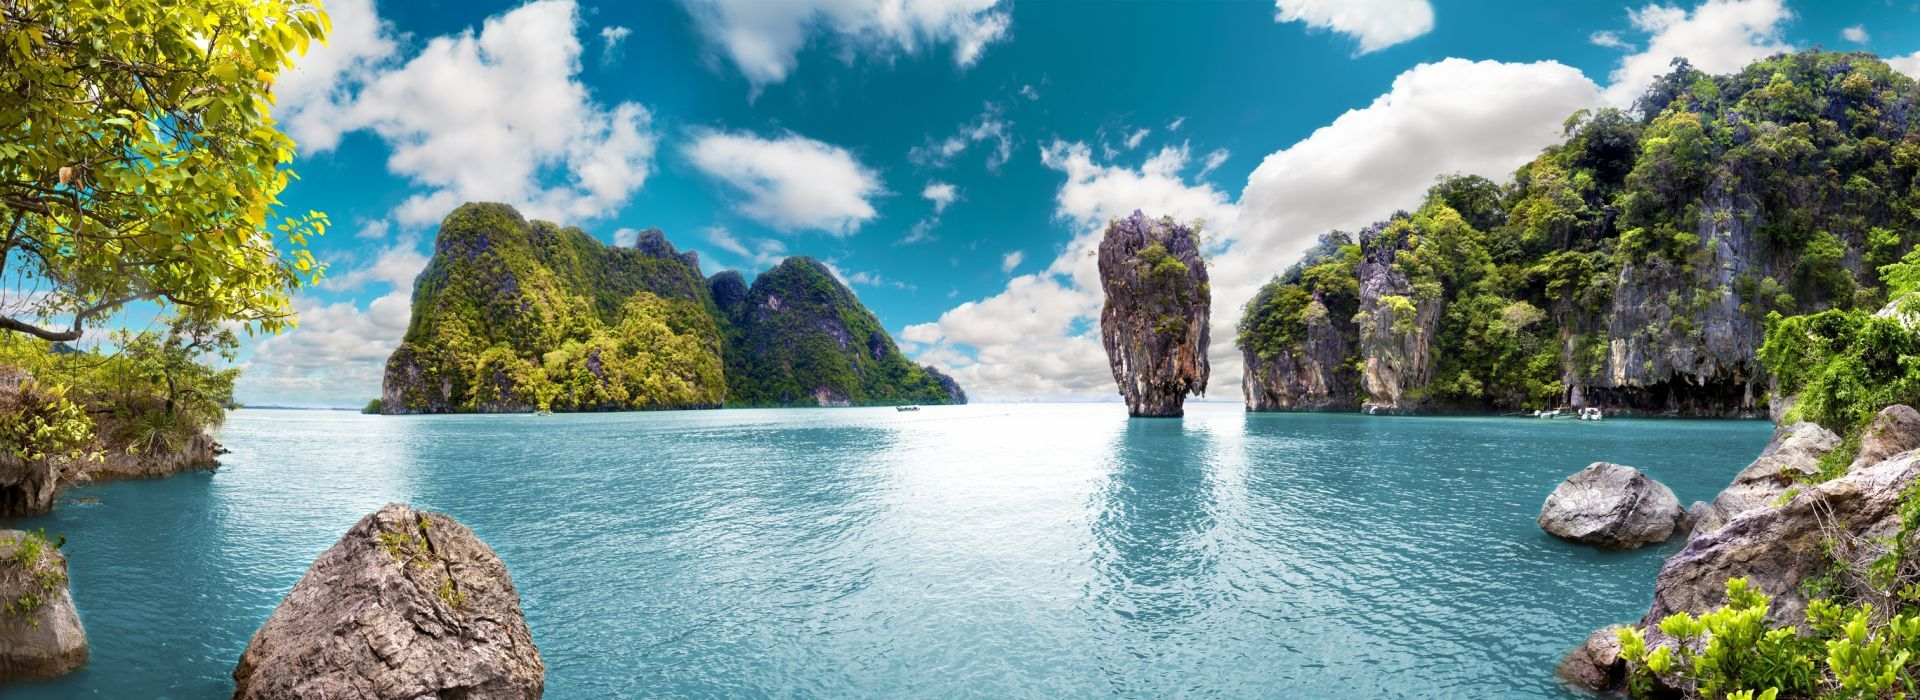 Getaways and short breaks Tours in Thailand